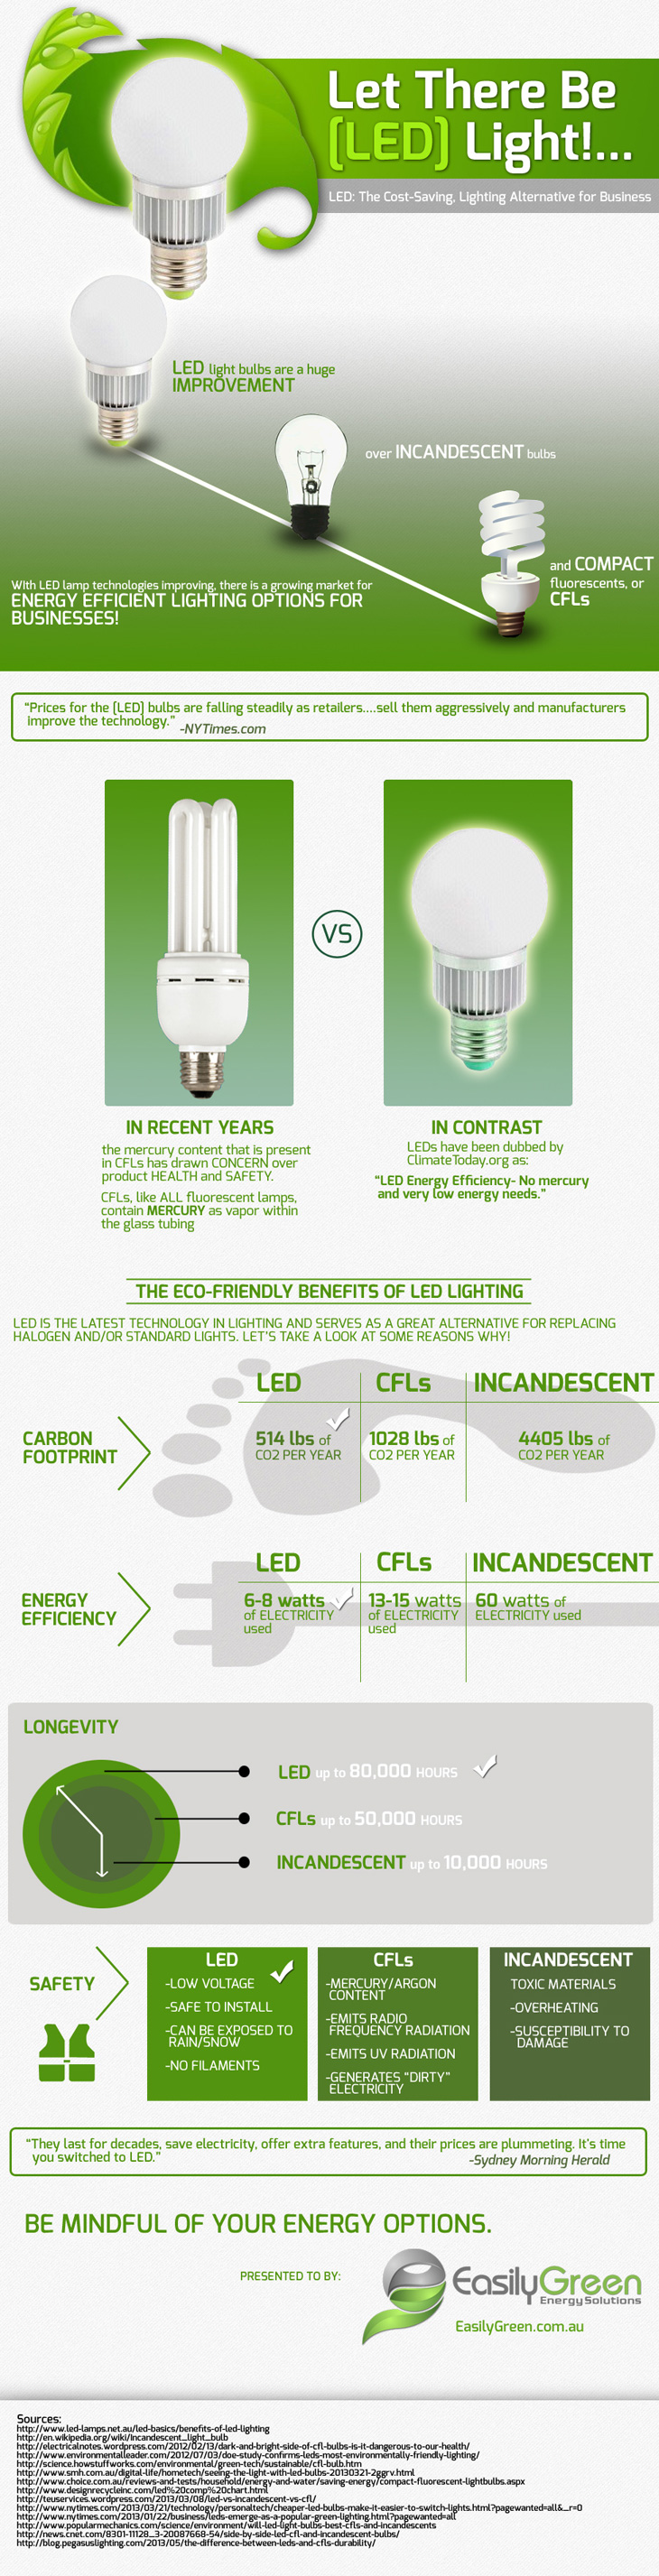 Led light bulbs vs cfl vs incandescent bulbs Led light bulbs cost